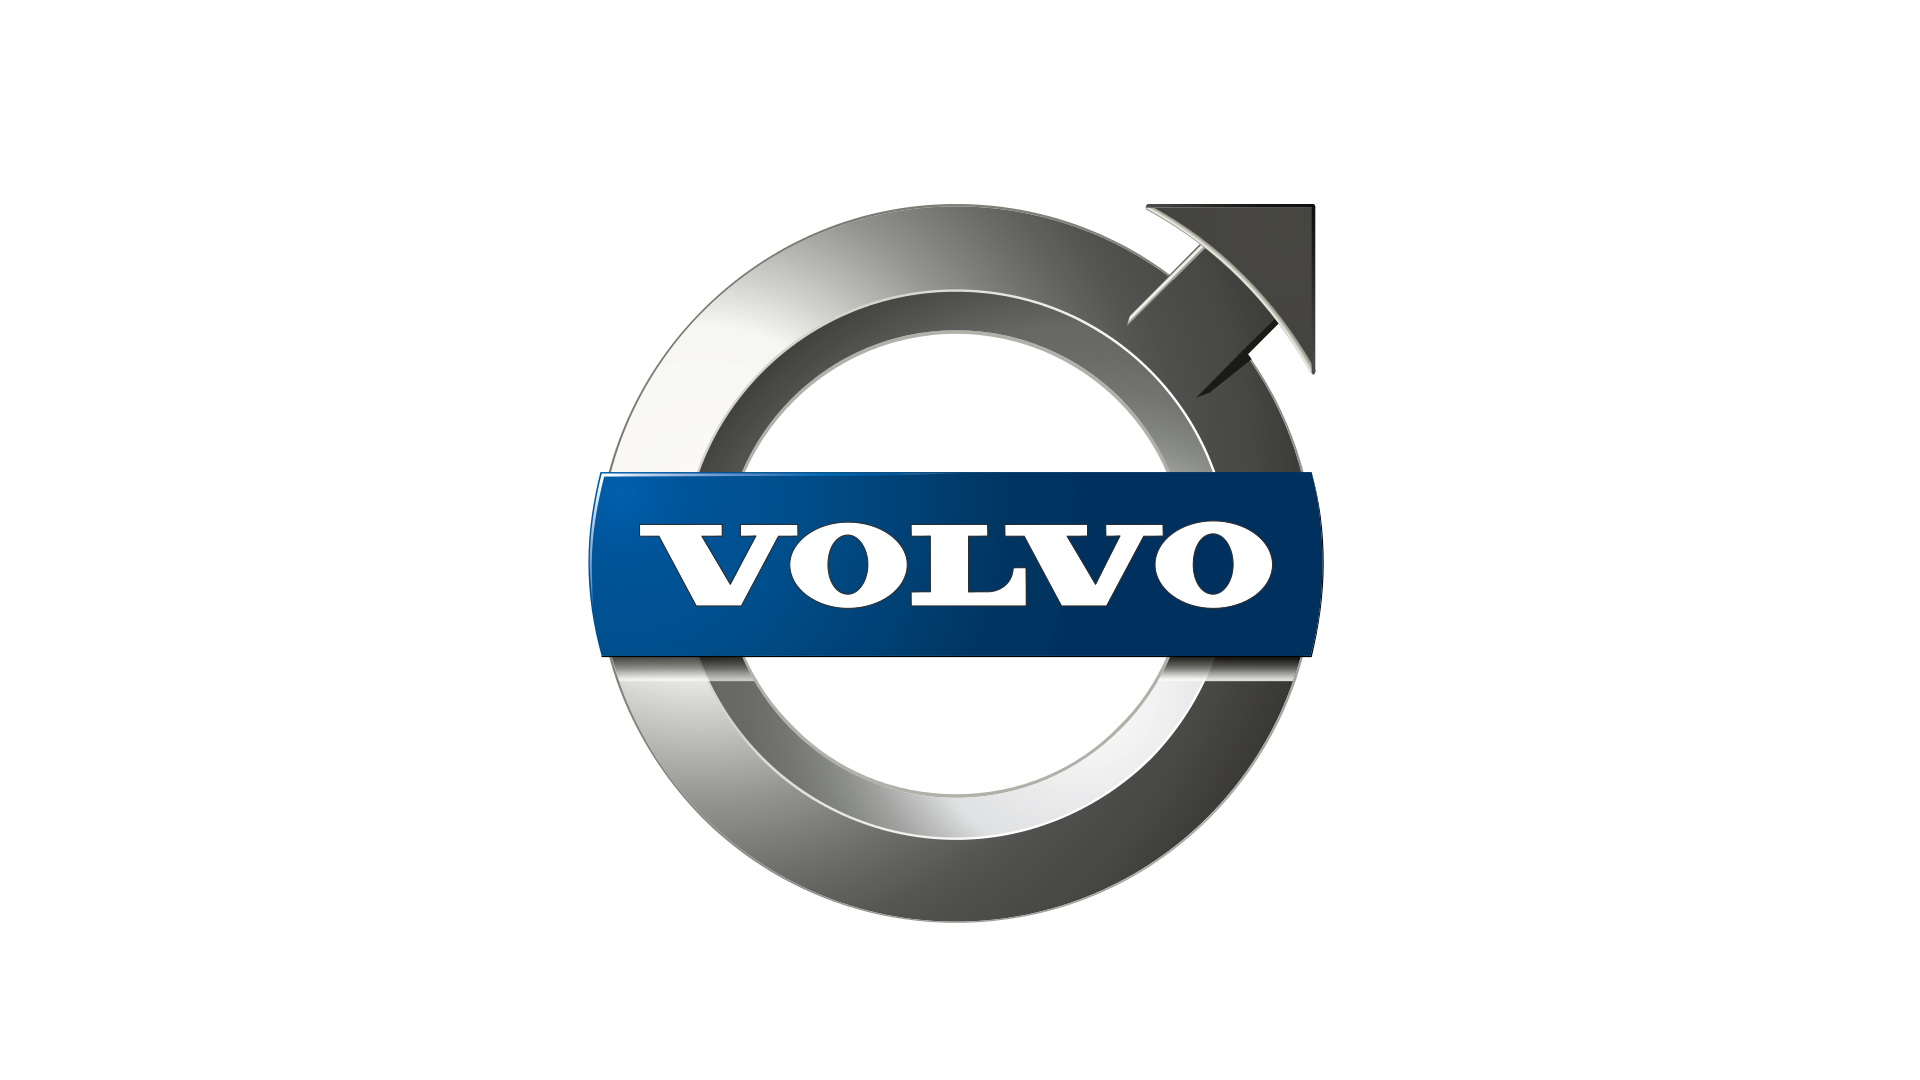 Bildresultat för Volvo the official logo